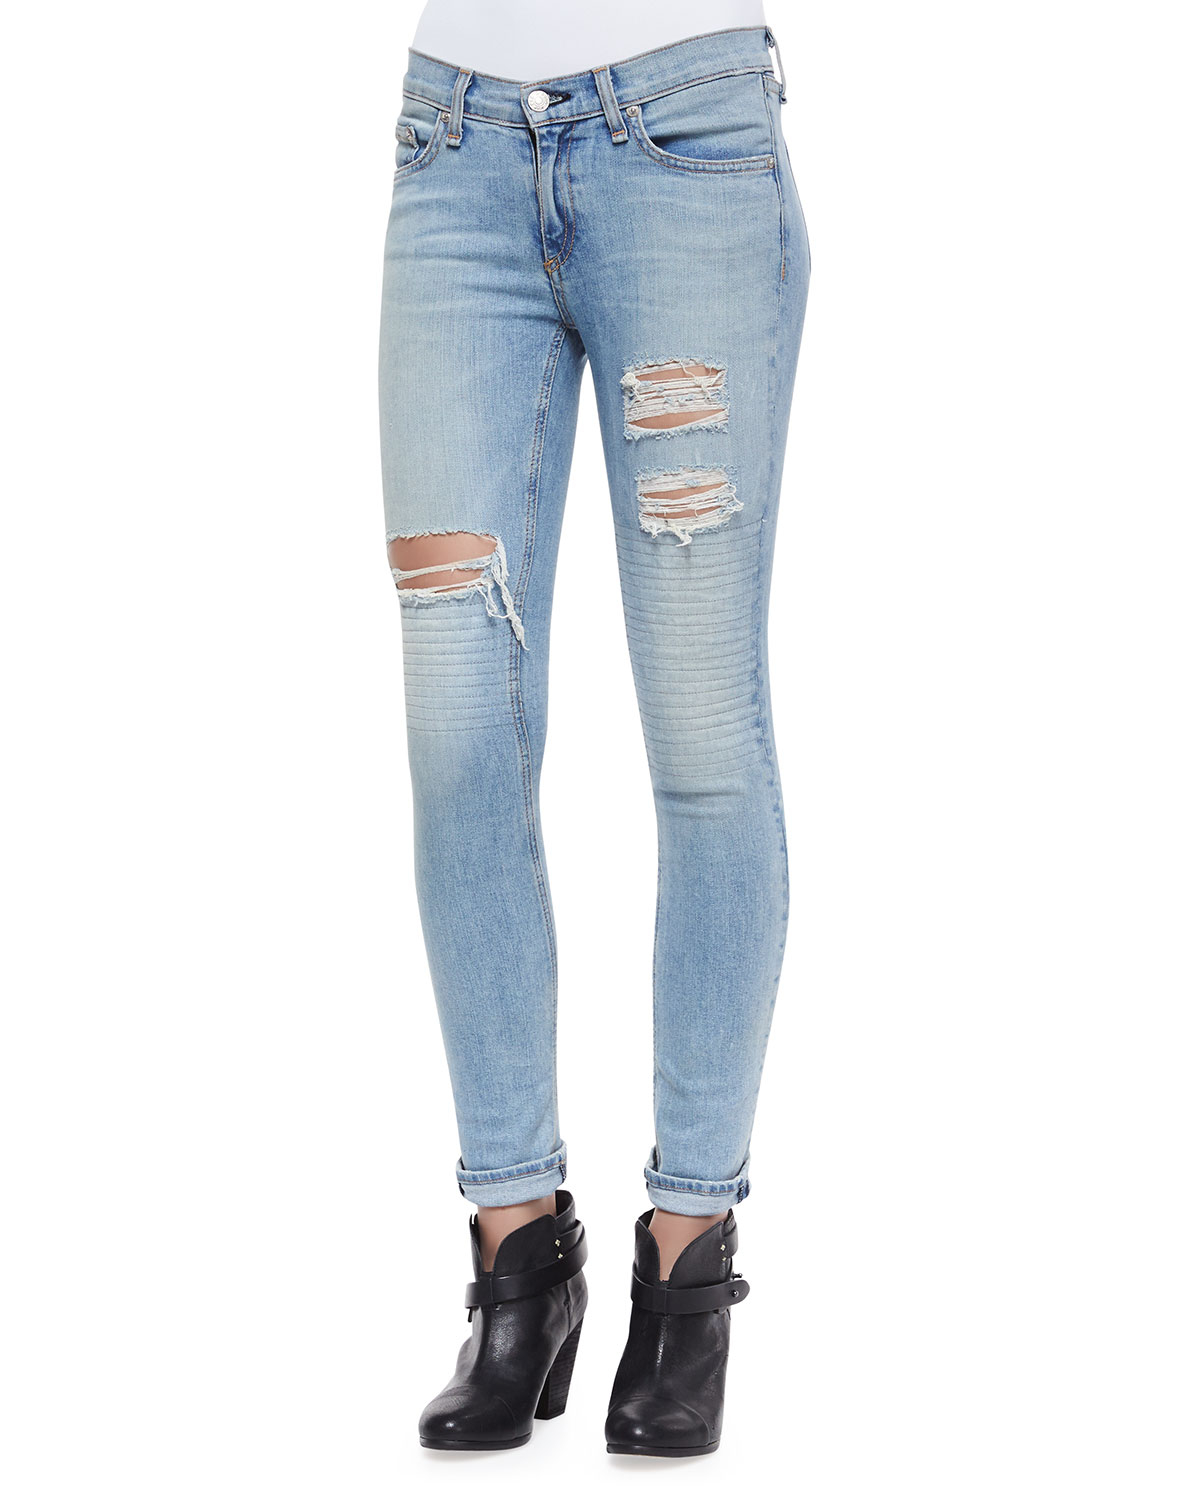 Rag & bone The Skinny Ripped Jeans in Blue | Lyst